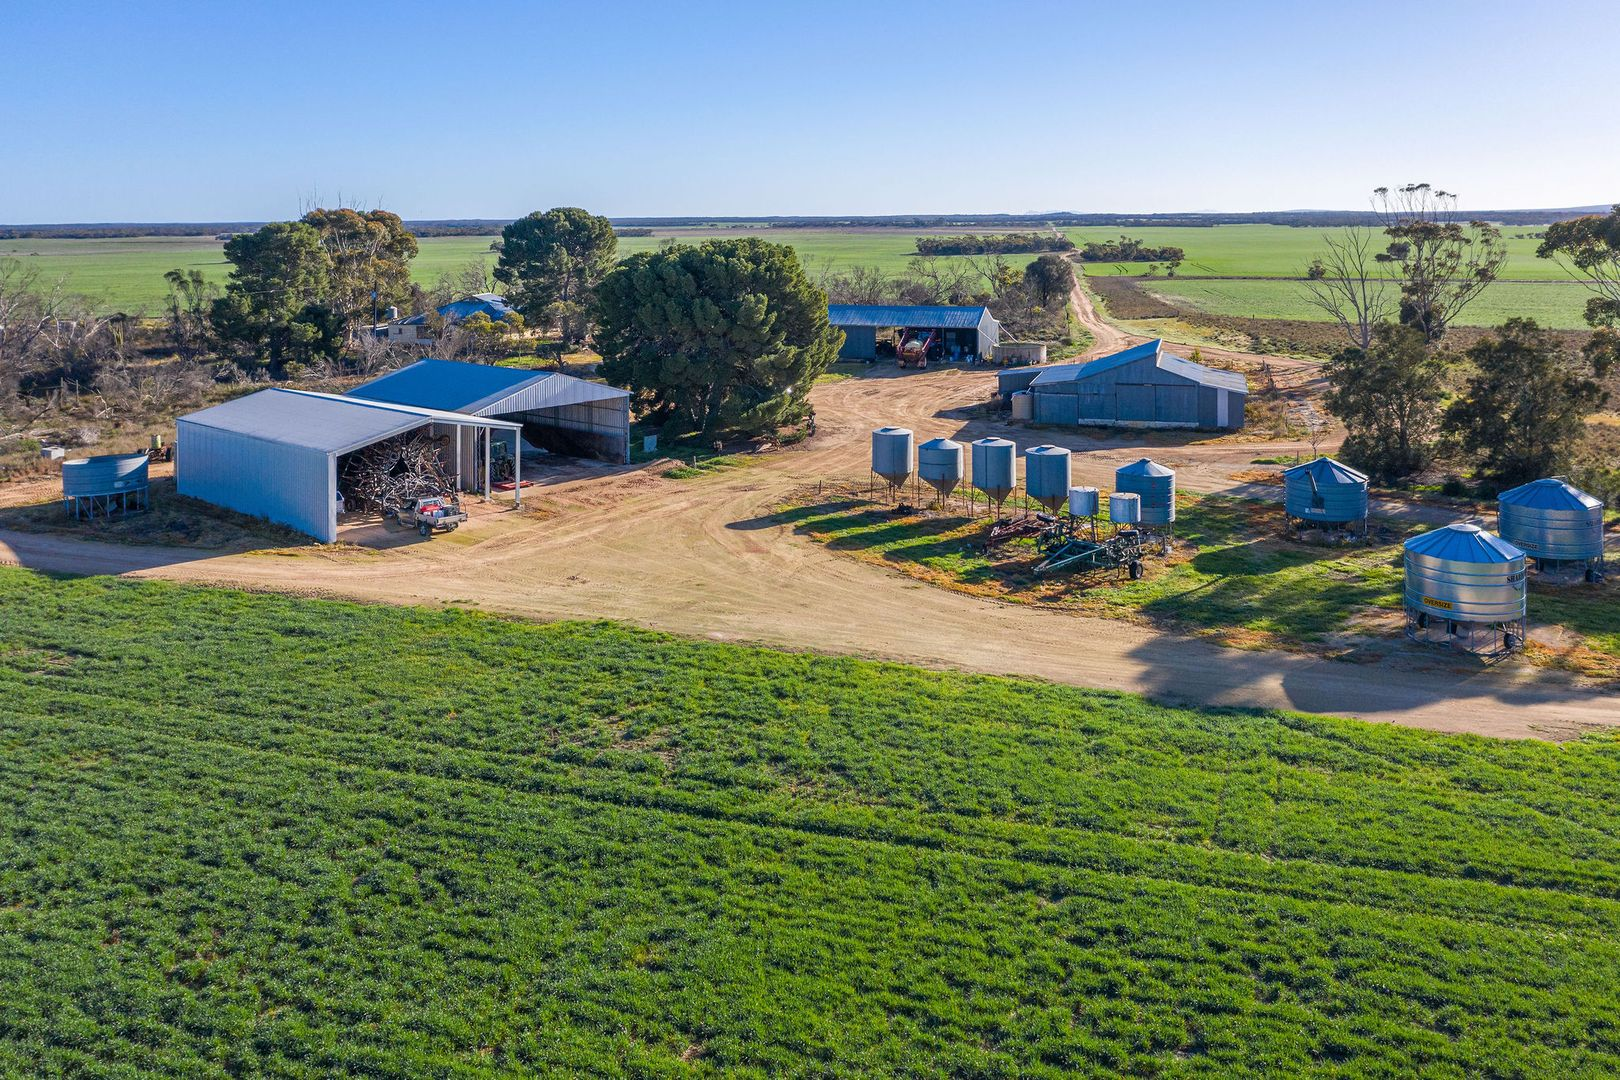 3276 Mount Hill Coomaba Road, Moody, Ungarra SA 5607, Image 1